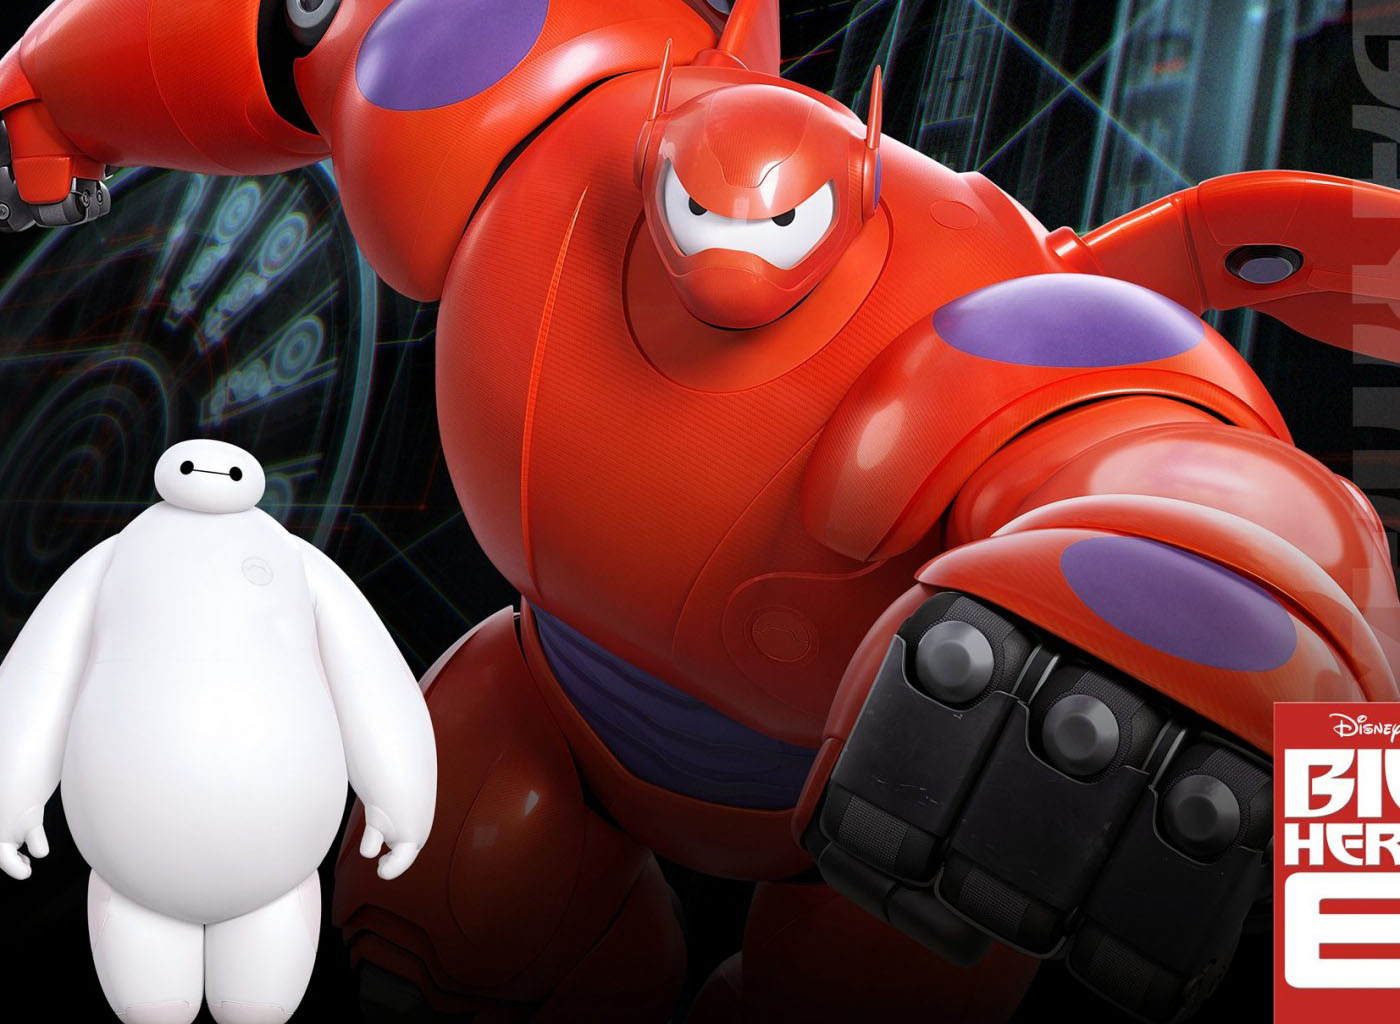 big hero 6 animation wallpaper